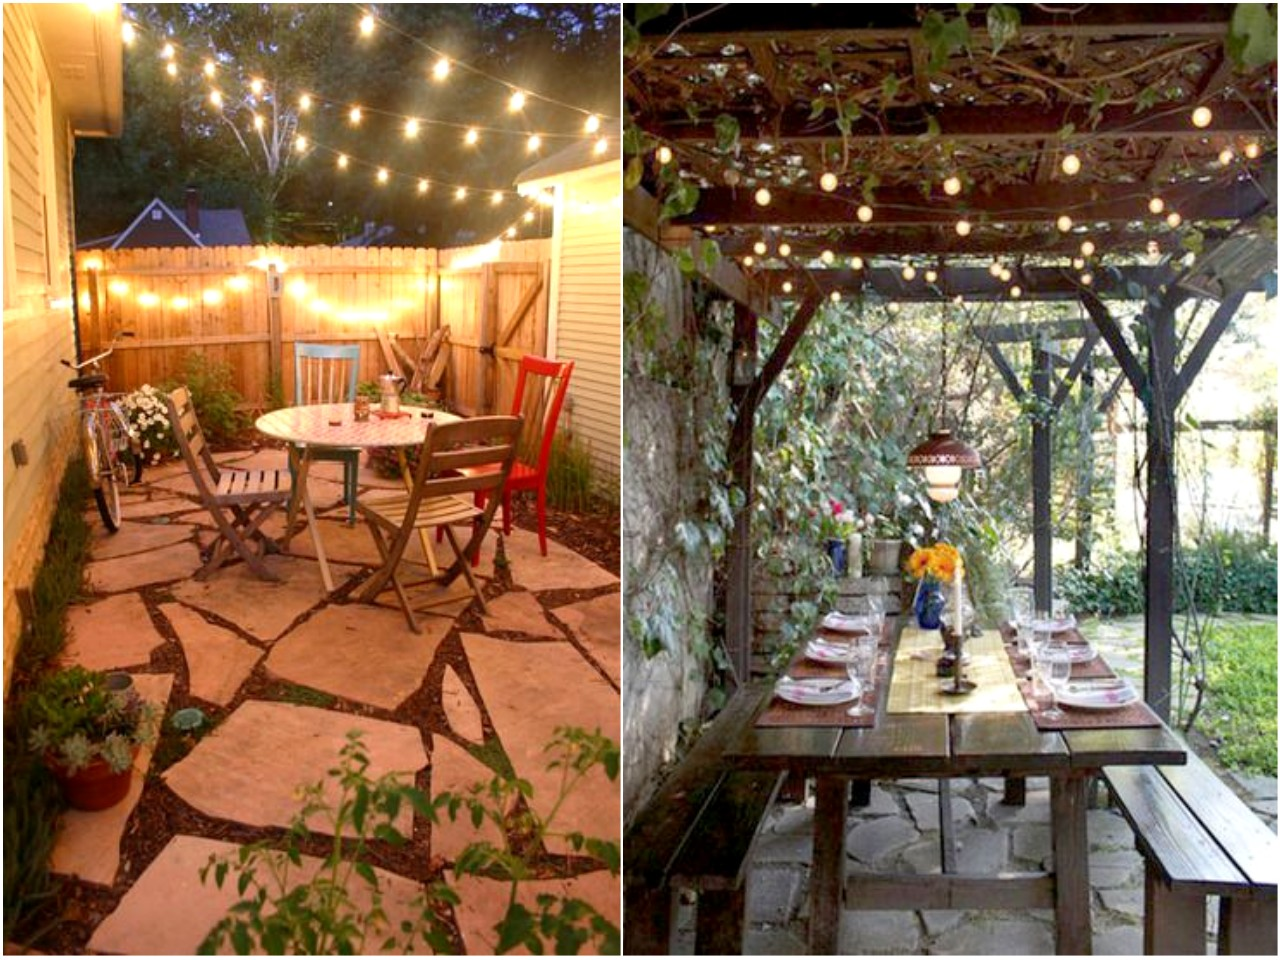 30 ideas para descubrir la decoraci n con luces de colores for Luces patio exterior